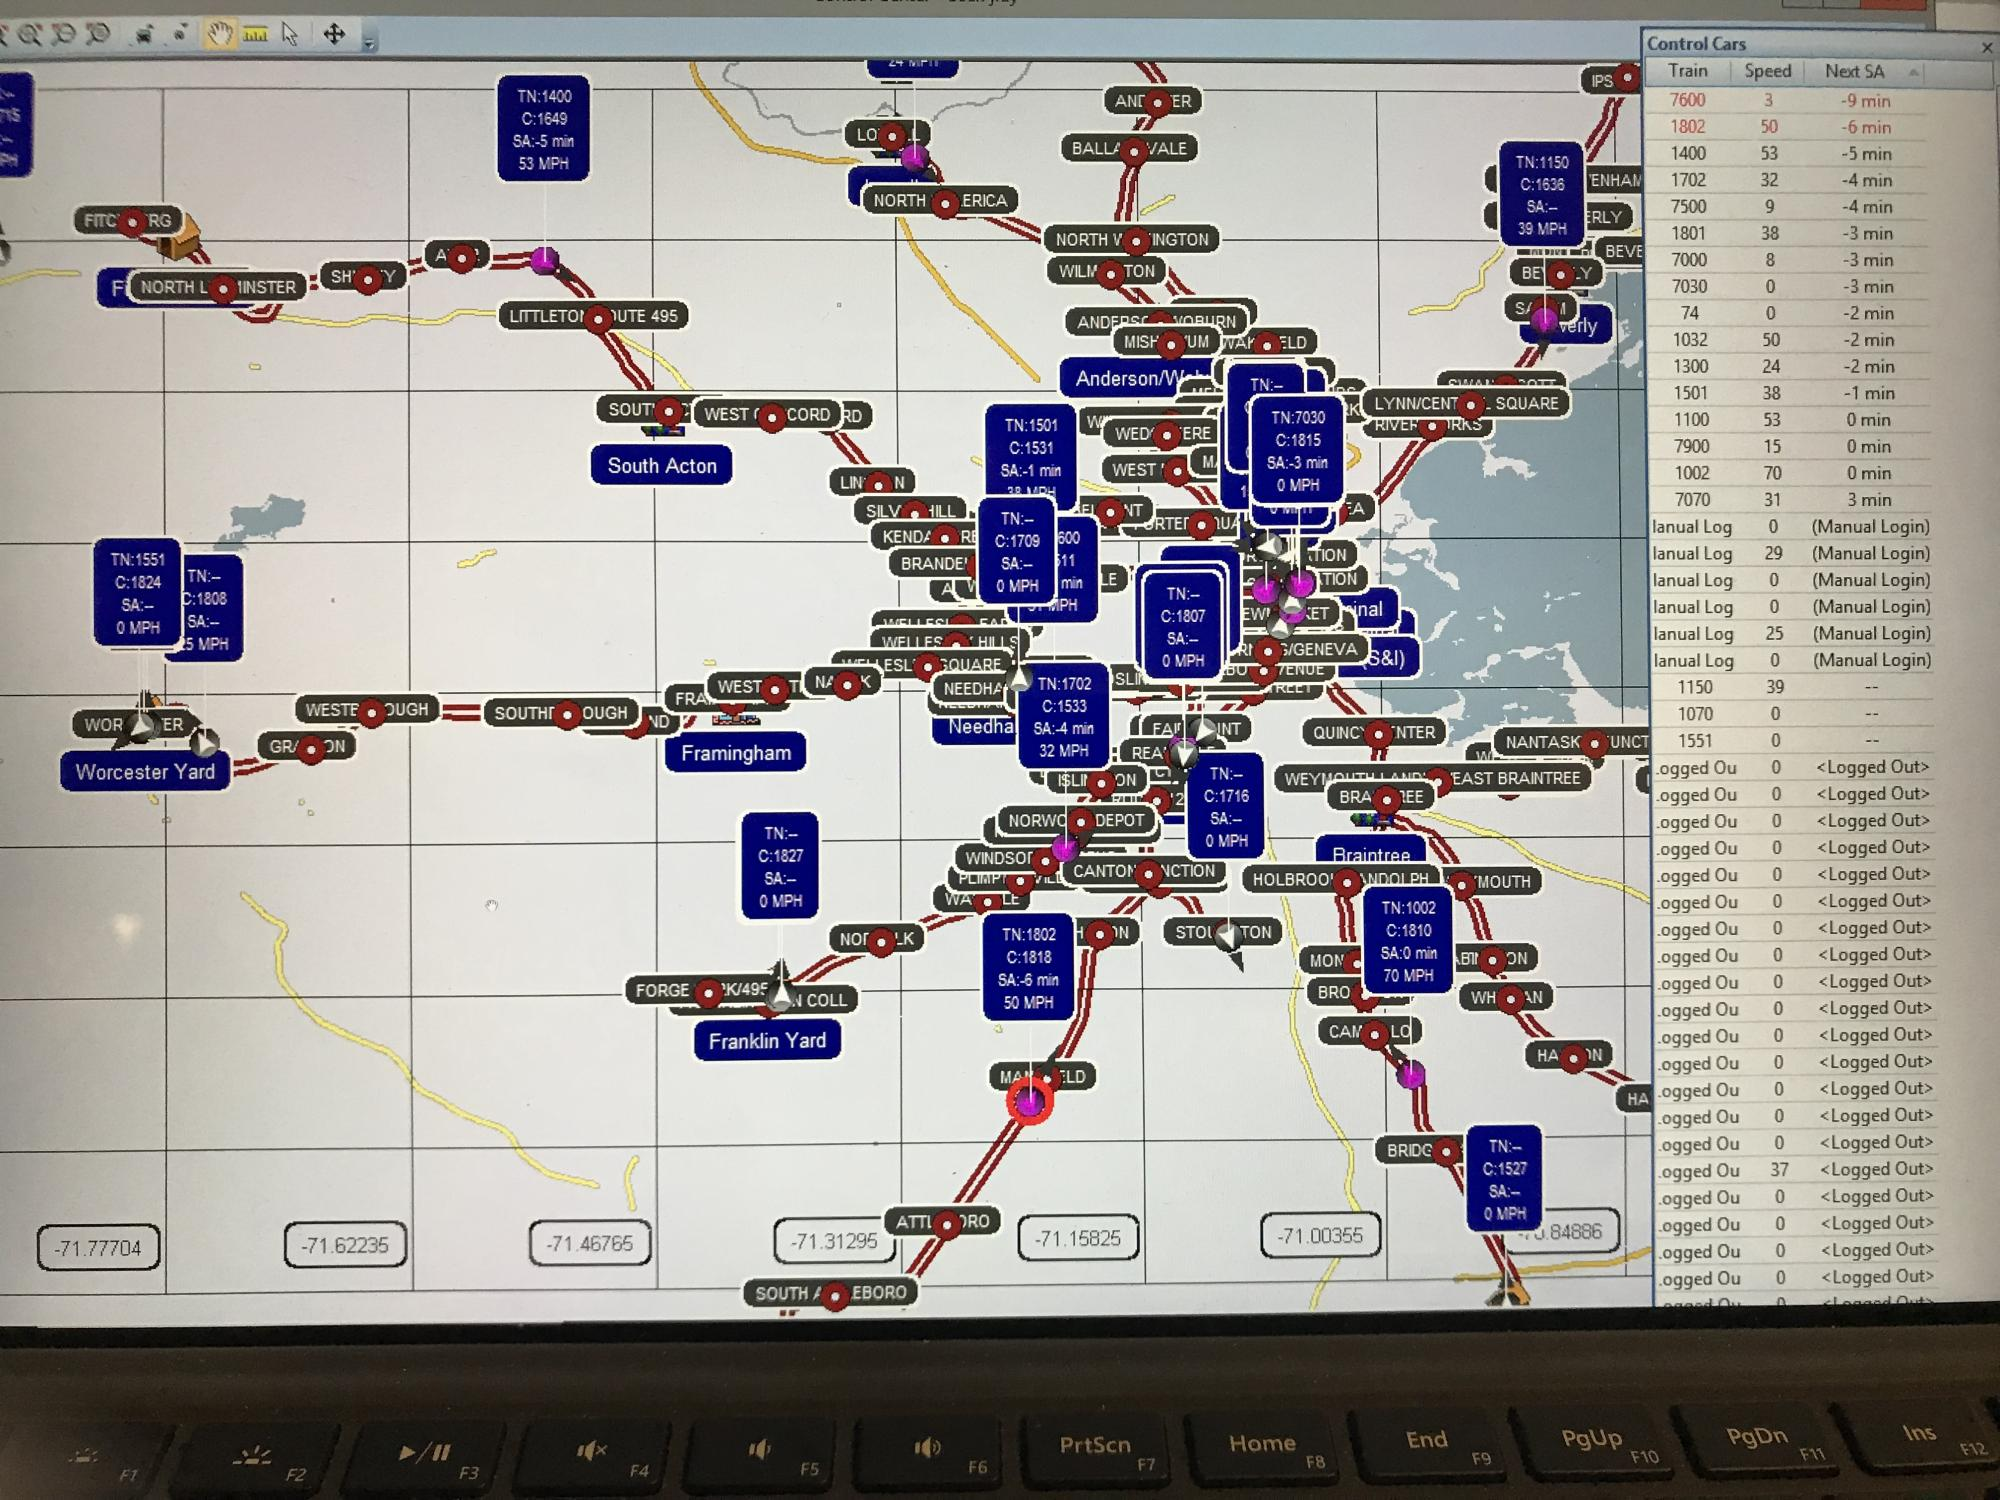 A computer screen showing all the Commuter Rail stops, indicating train locations and speeds.